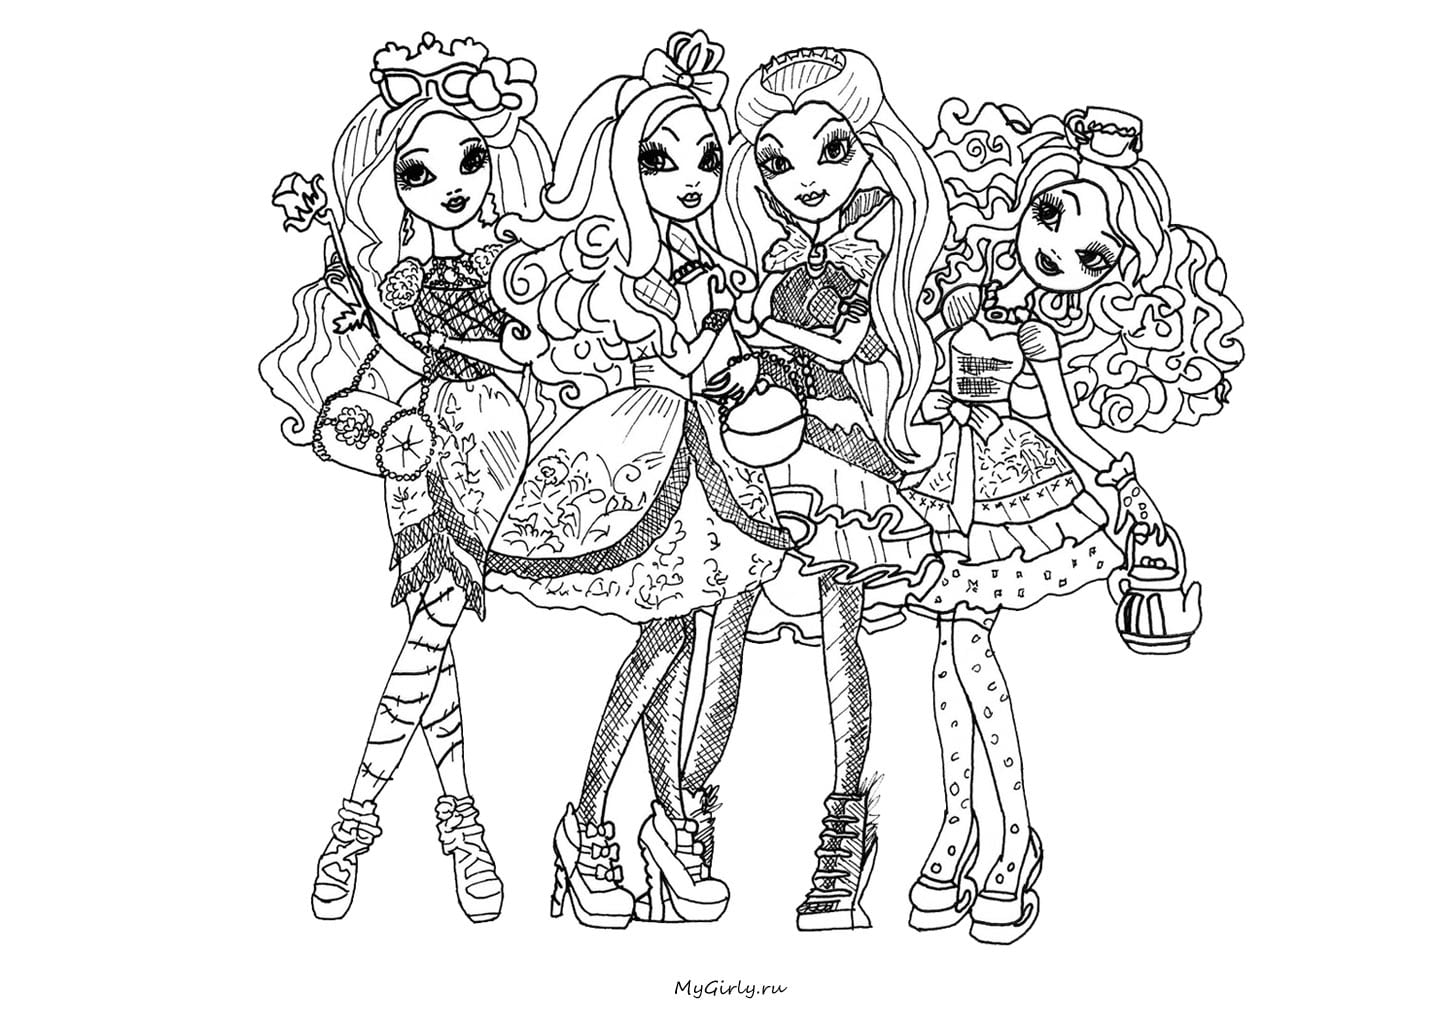 Free Printable Madeline Coloring Pages Dibujos Para Colorear